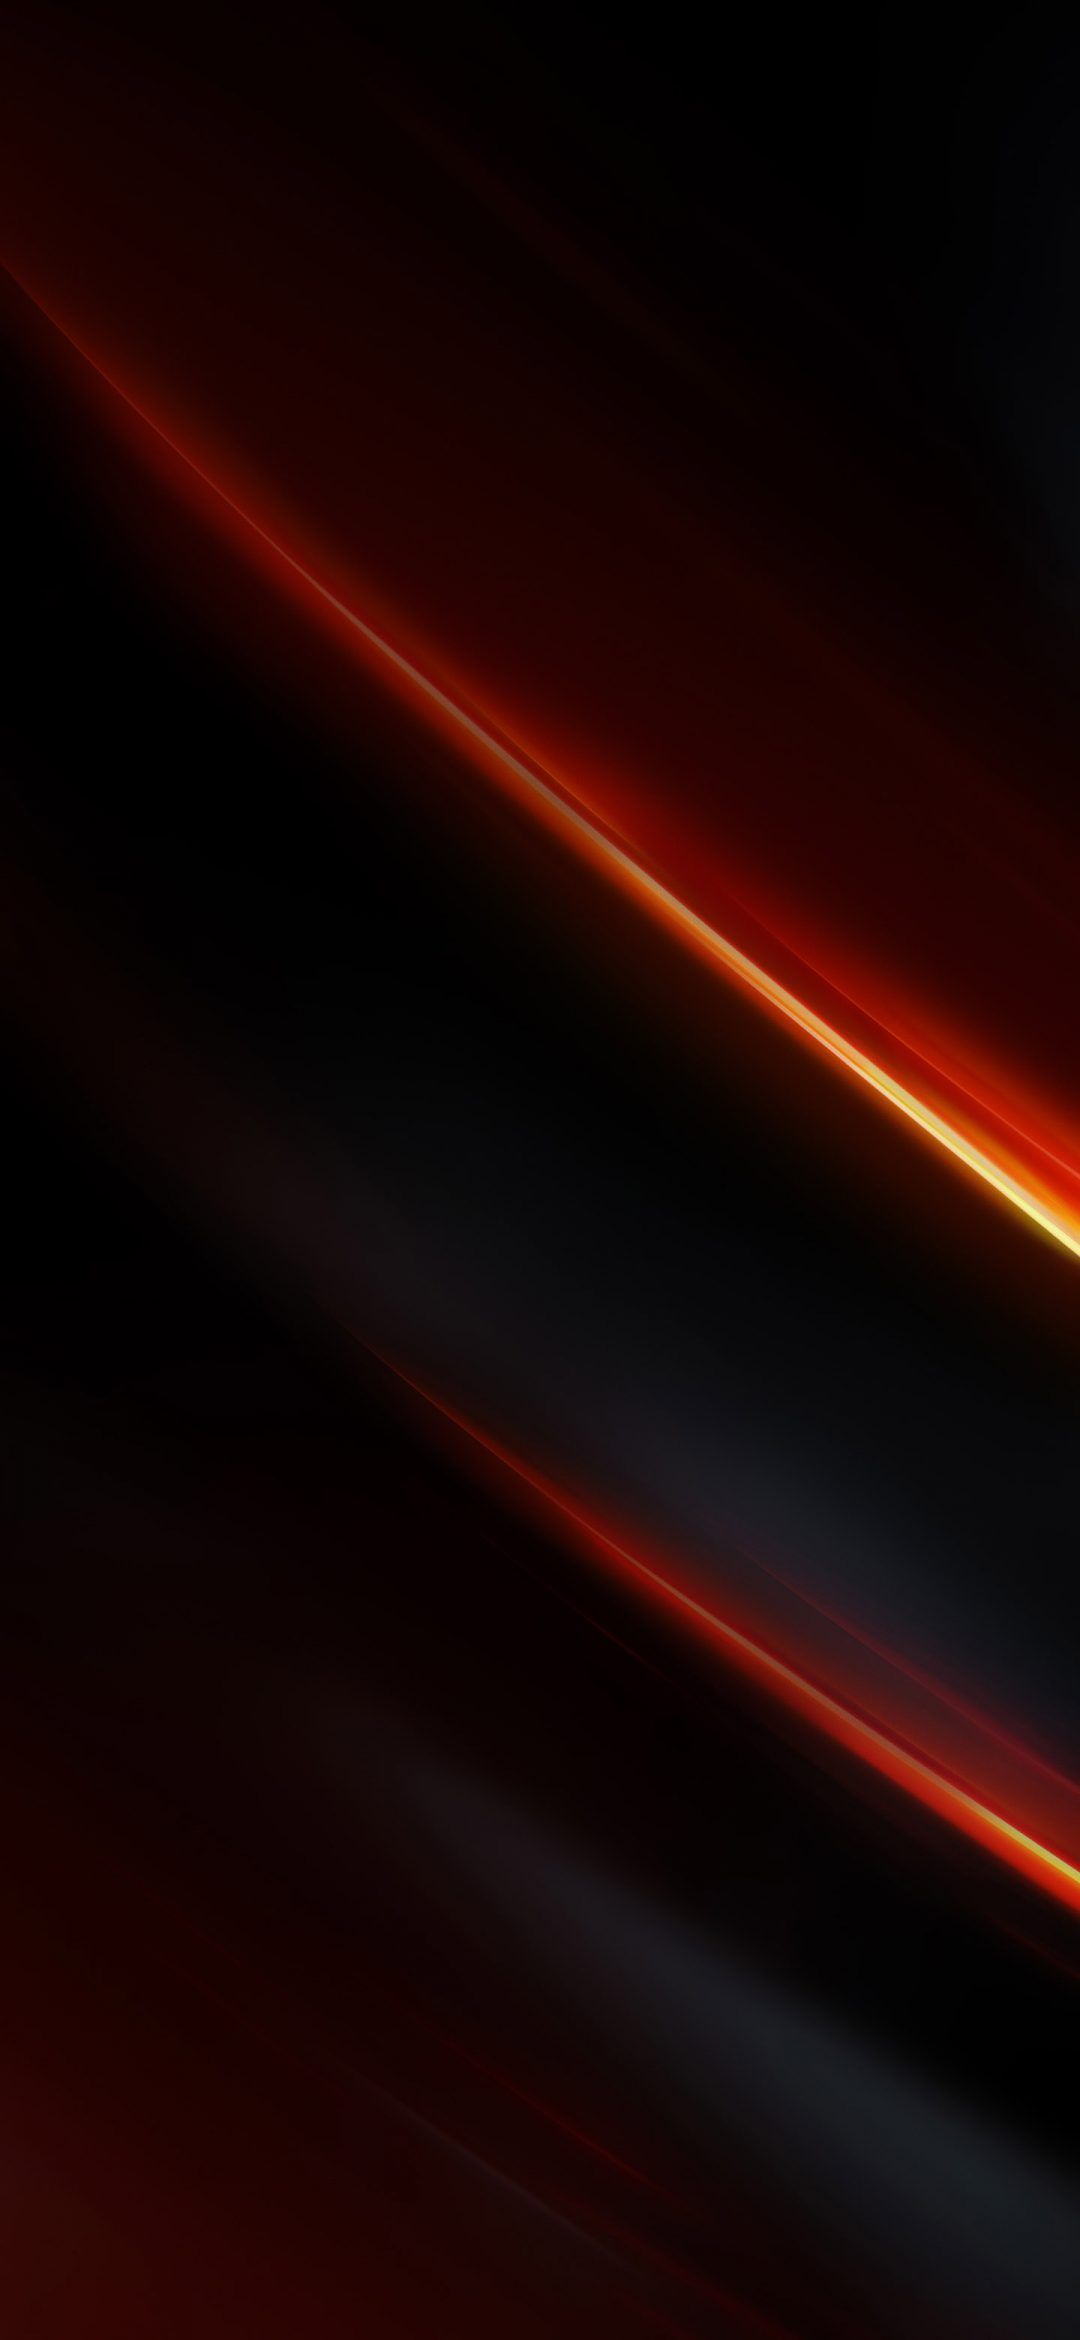 Oneplus 7t Pro Mclaren Edition Wallpapers Lwp Droidviews Oneplus Wallpapers Abstract Iphone Wallpaper Phone Wallpaper Design Dark wallpaper oneplus pro